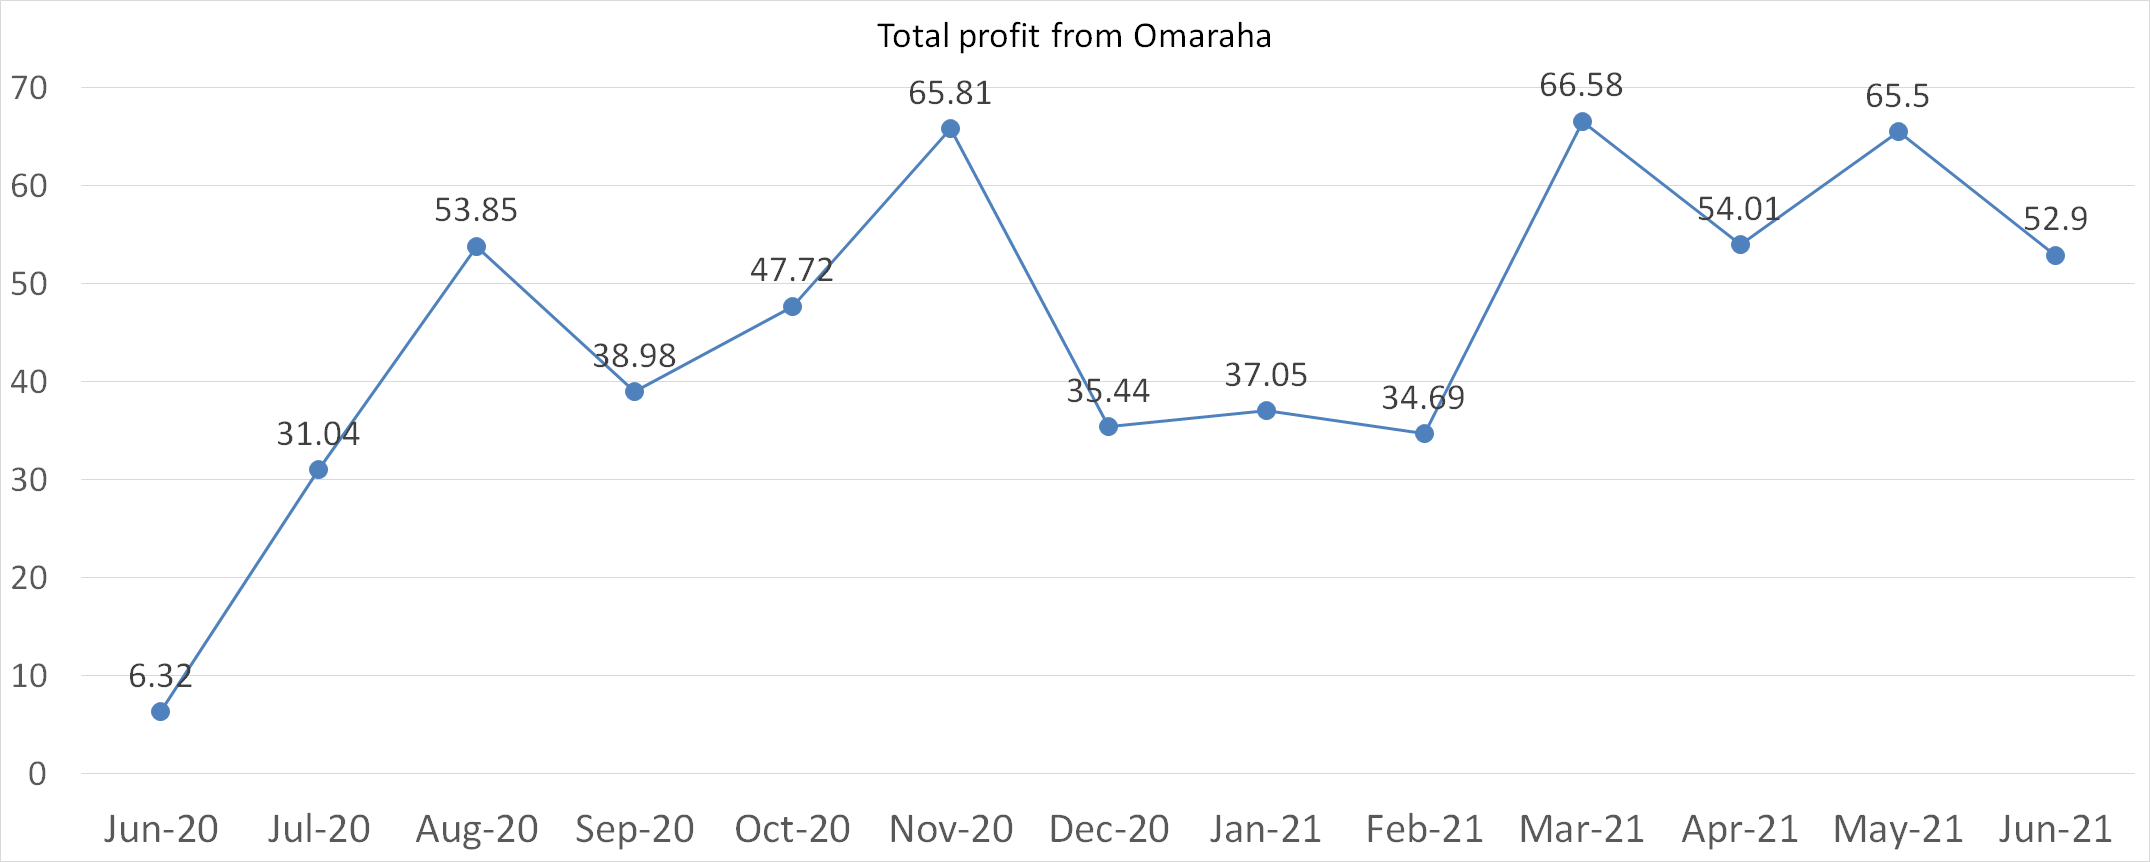 Total profit from Omaraha in june 2021